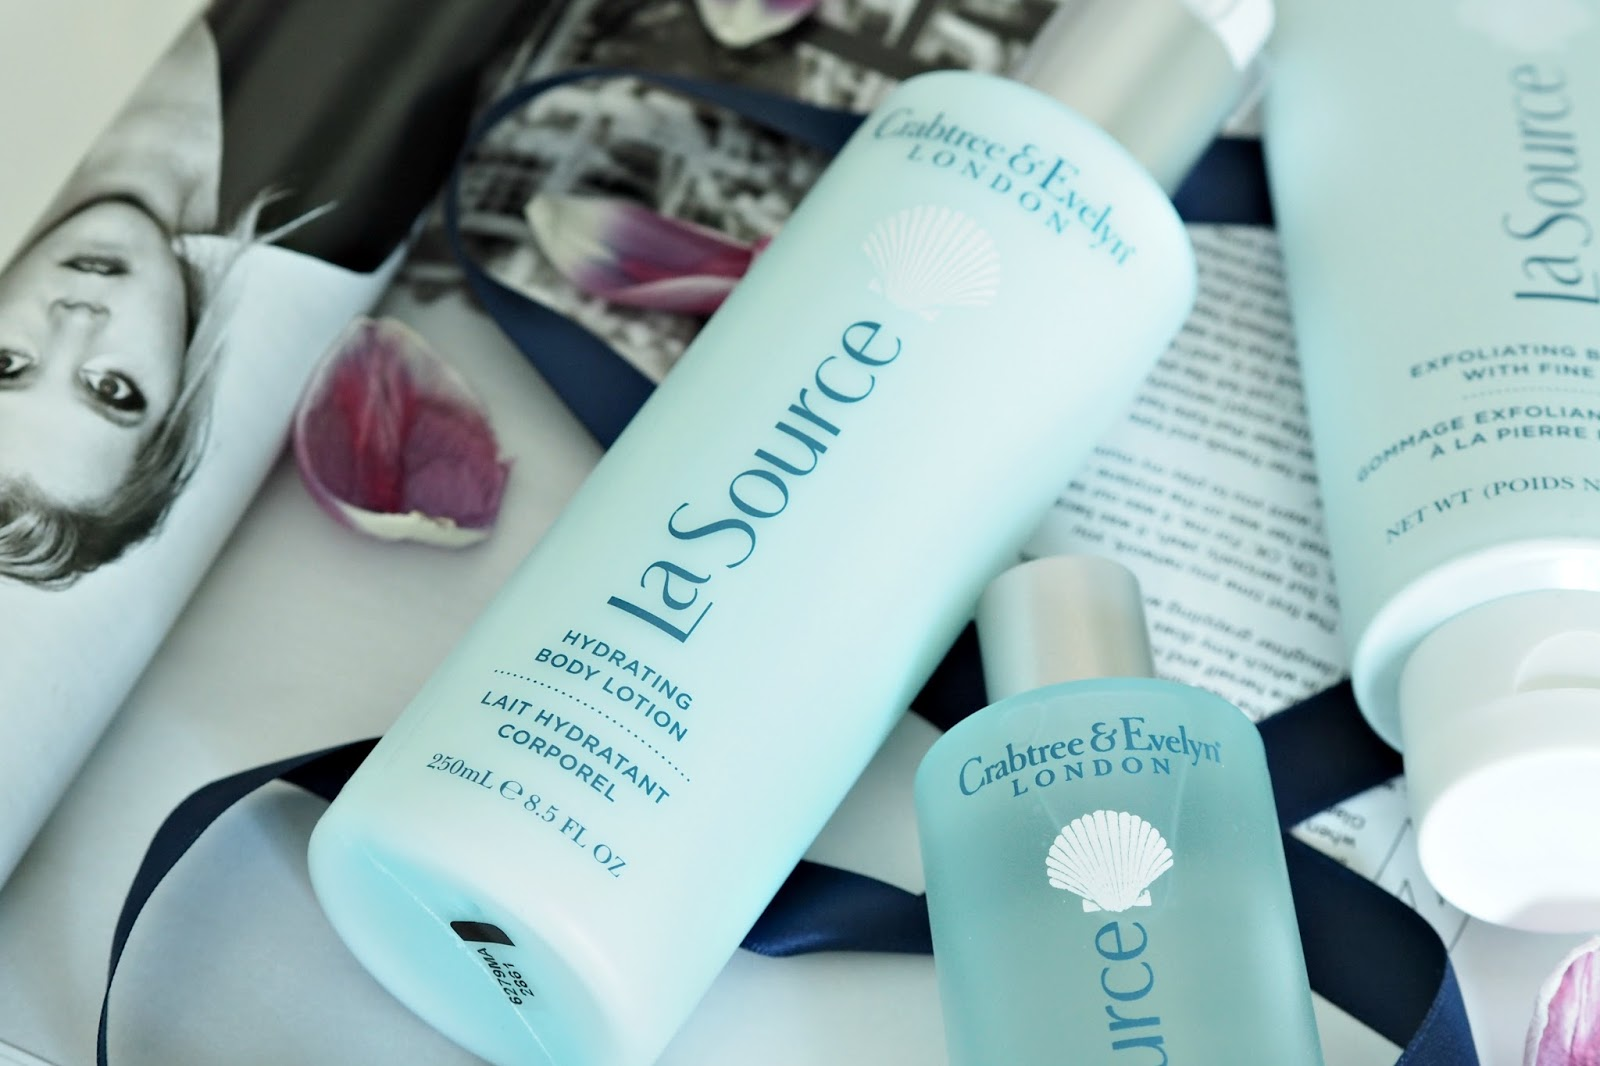 Crabtree & Evelyn La Source Hydrating Body Lotion